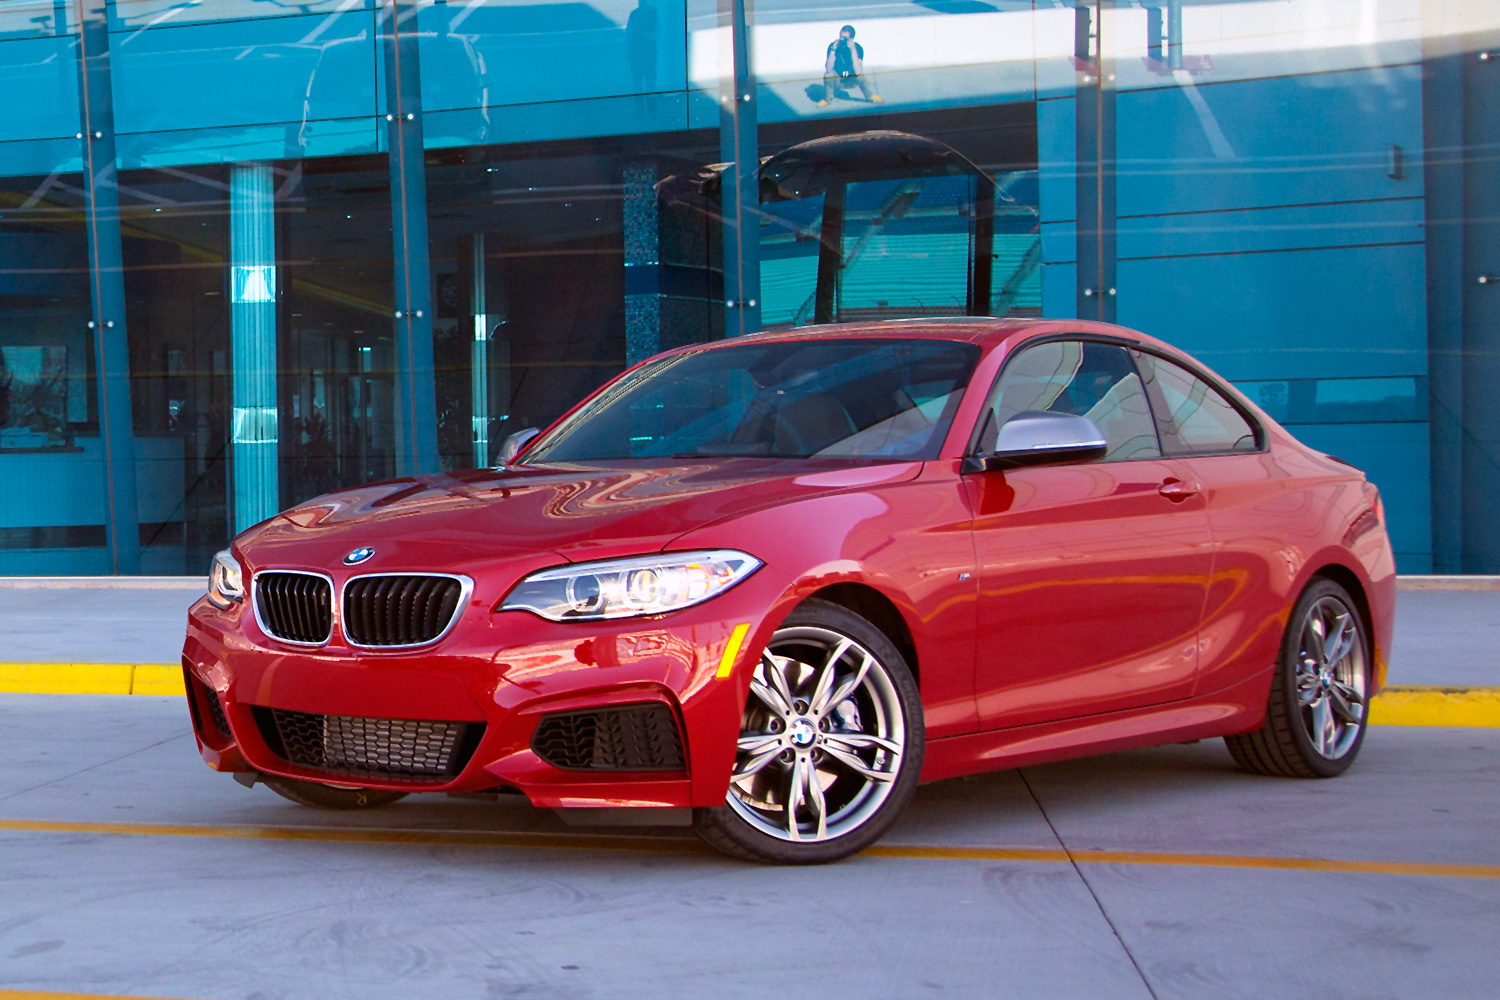 2014 BMW M235i Coupe Backgrounds, Compatible - PC, Mobile, Gadgets| 1500x1000 px